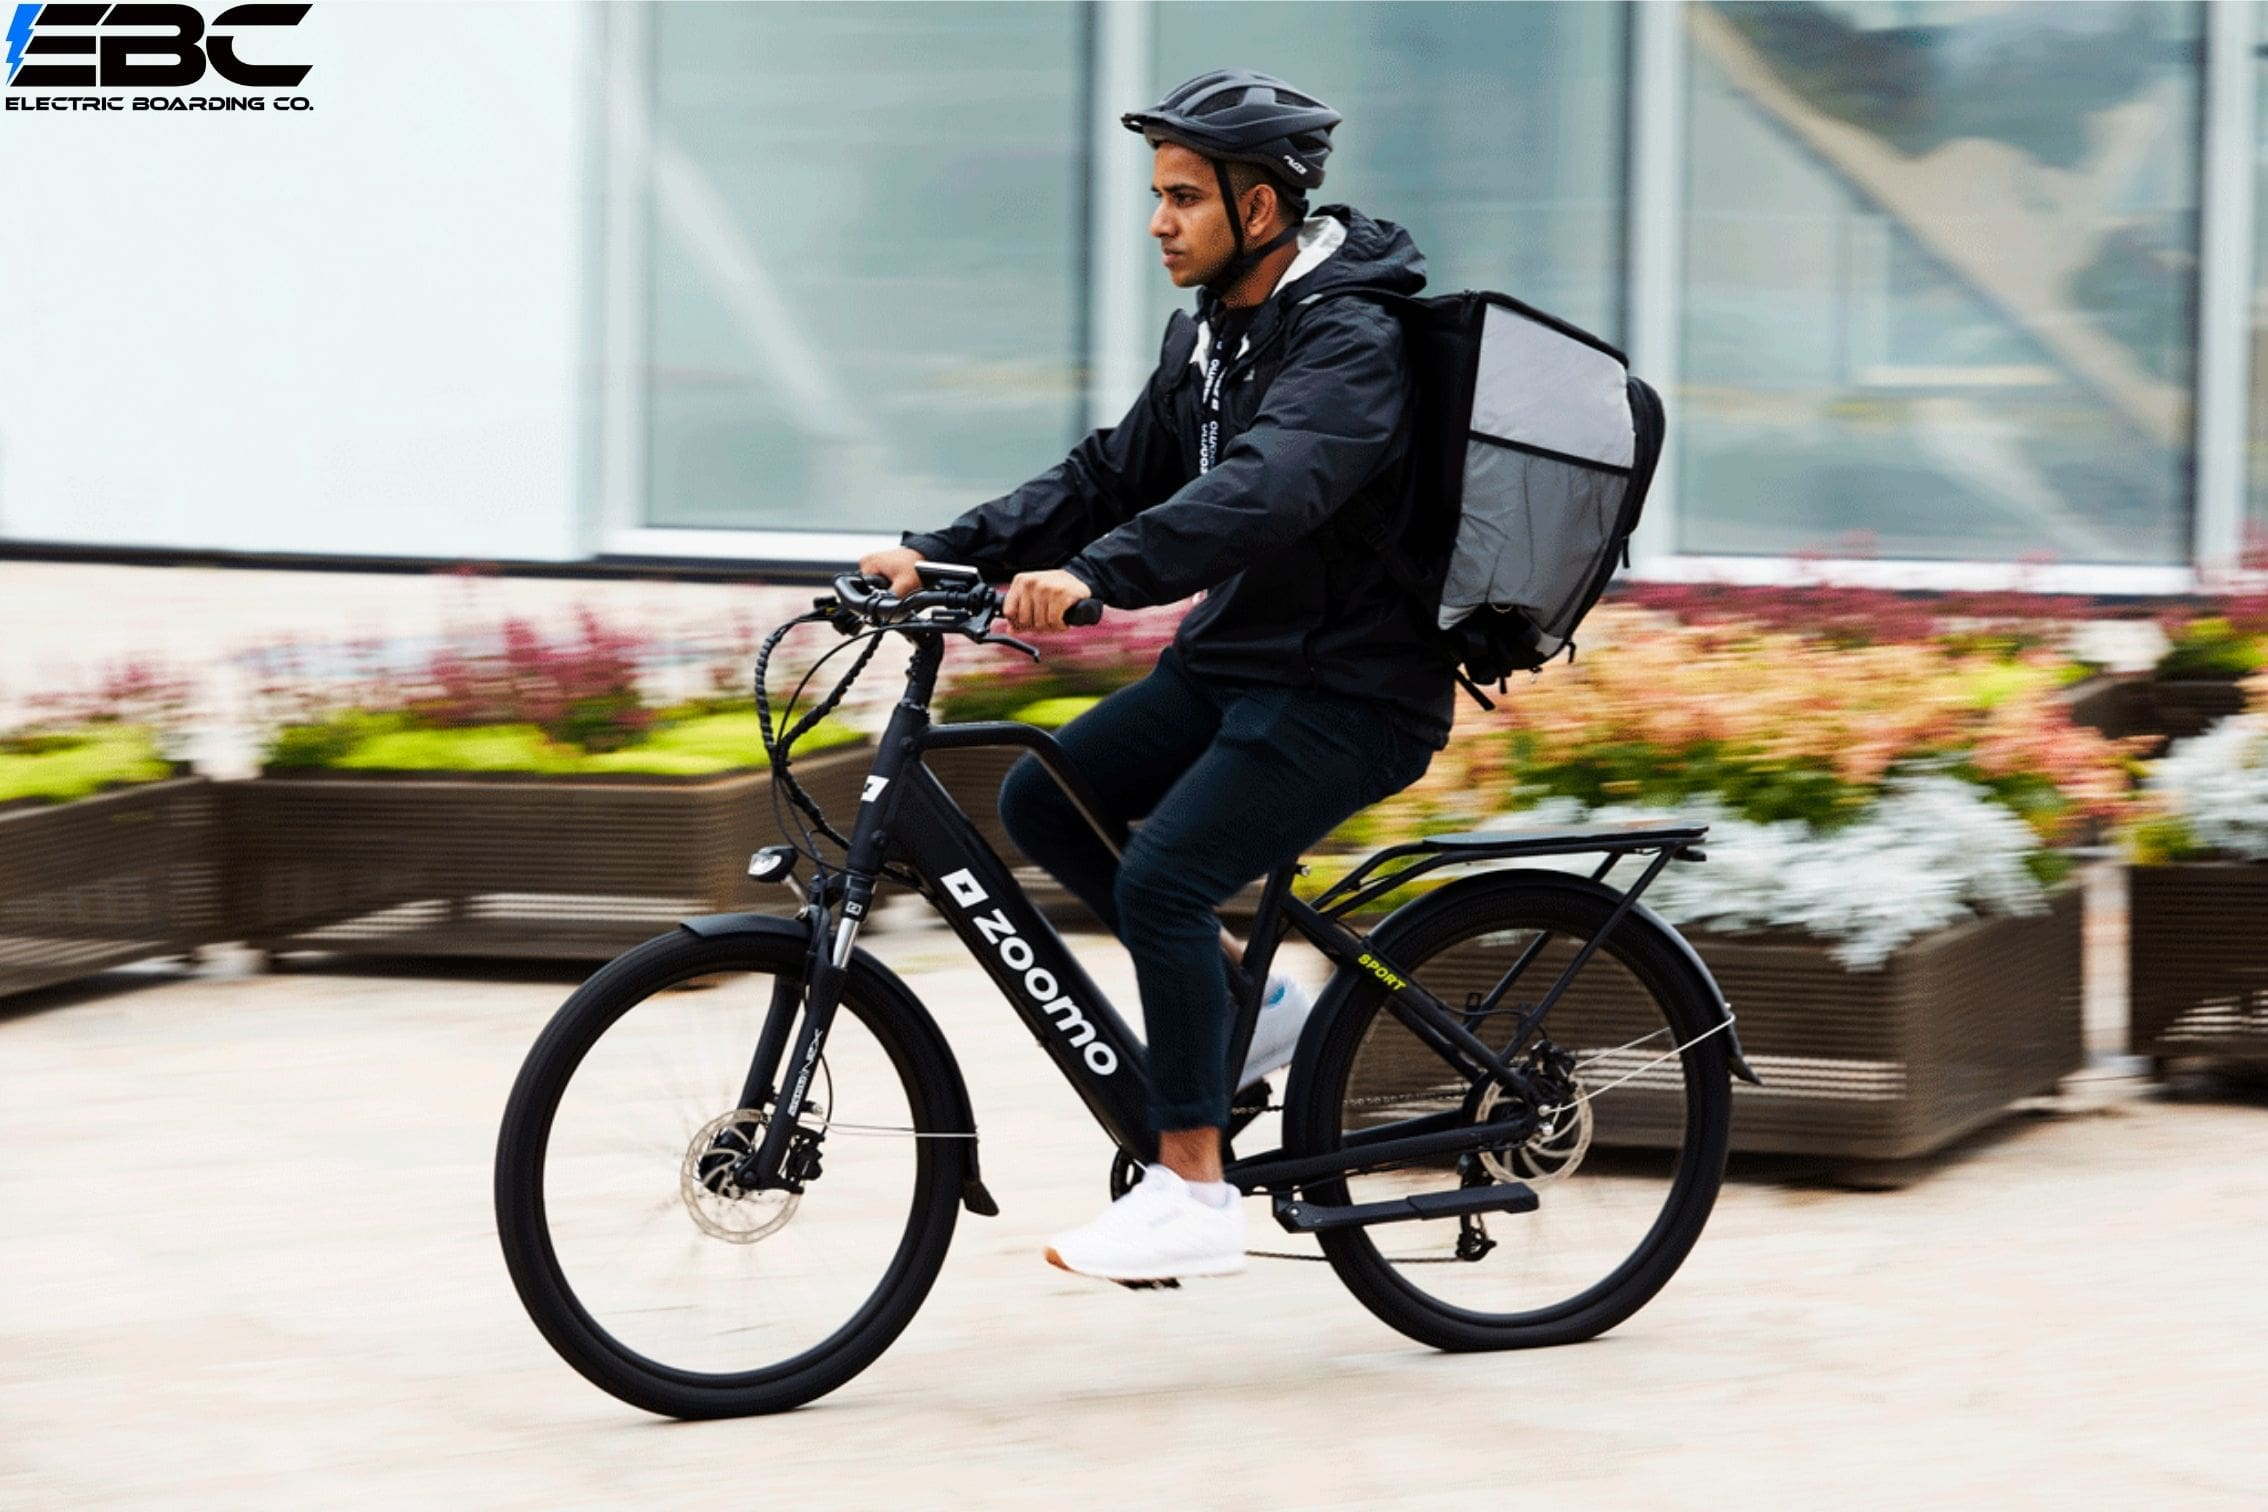 Delivery Drivers Electric Bike Product Page